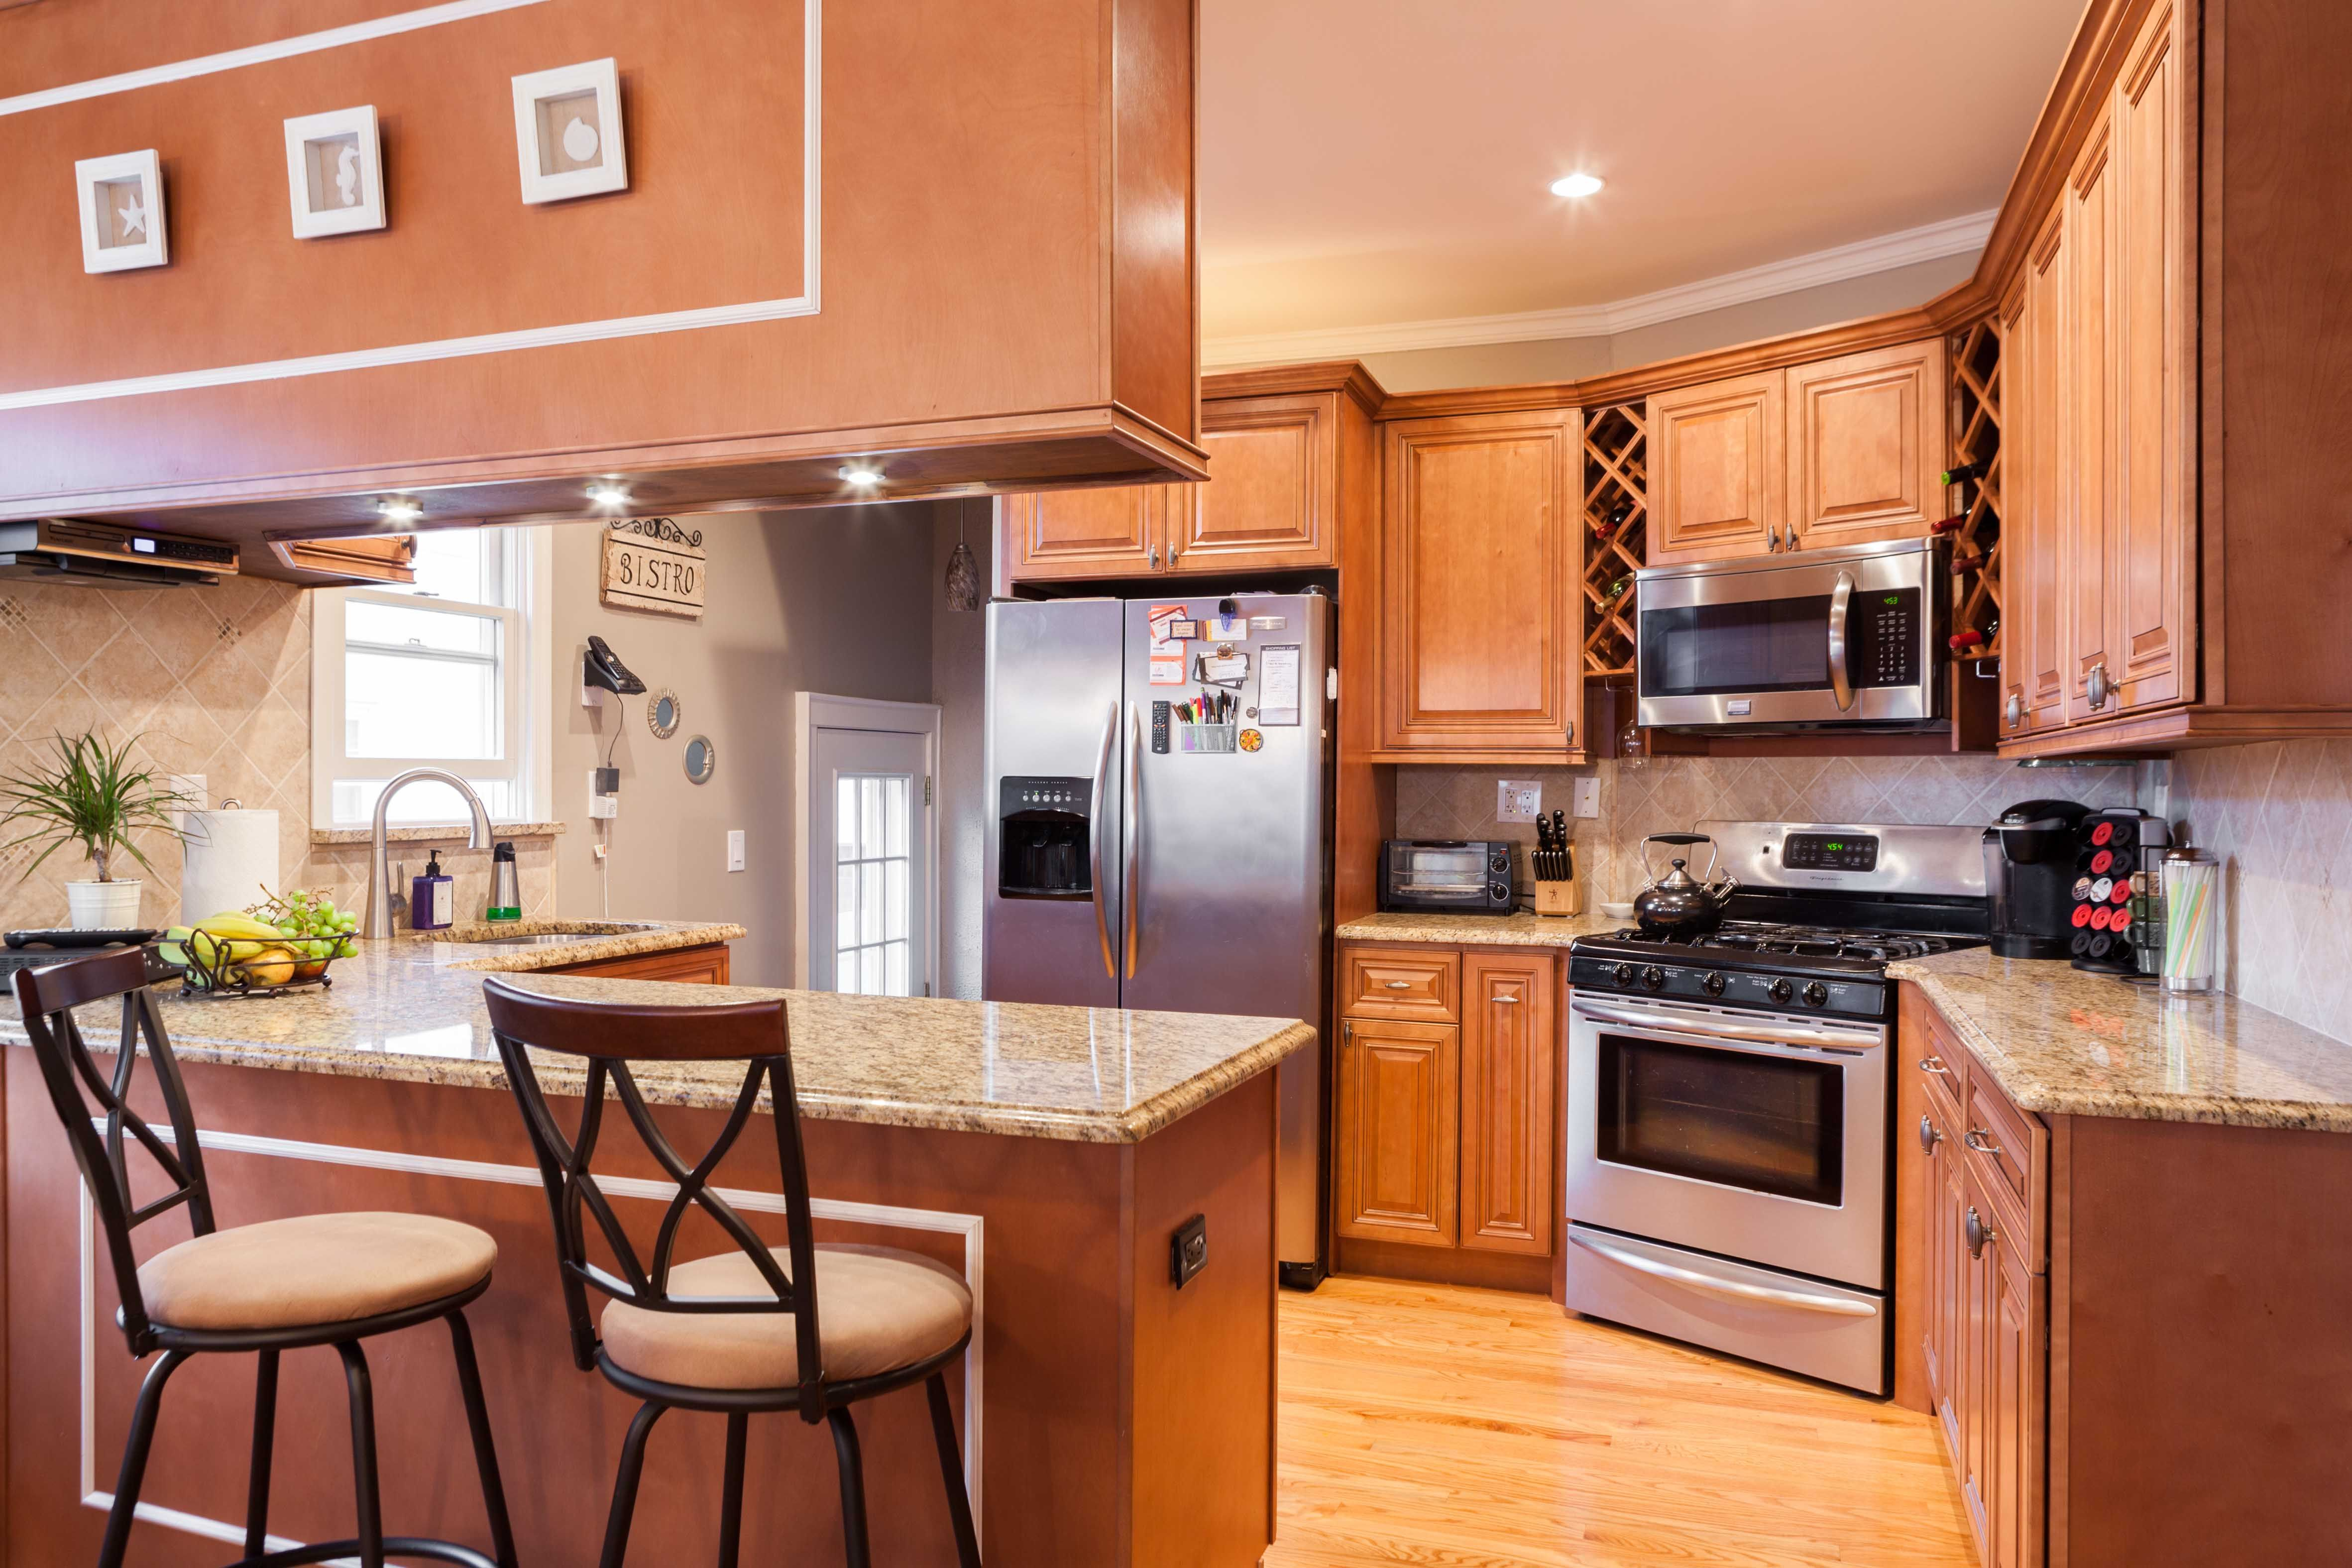 J K Traditional Maple Wood Cabinets In Cinnamon Glaze Style Co66 Kitchen Cabinet Colors Kitchen Design Kitchen Decor